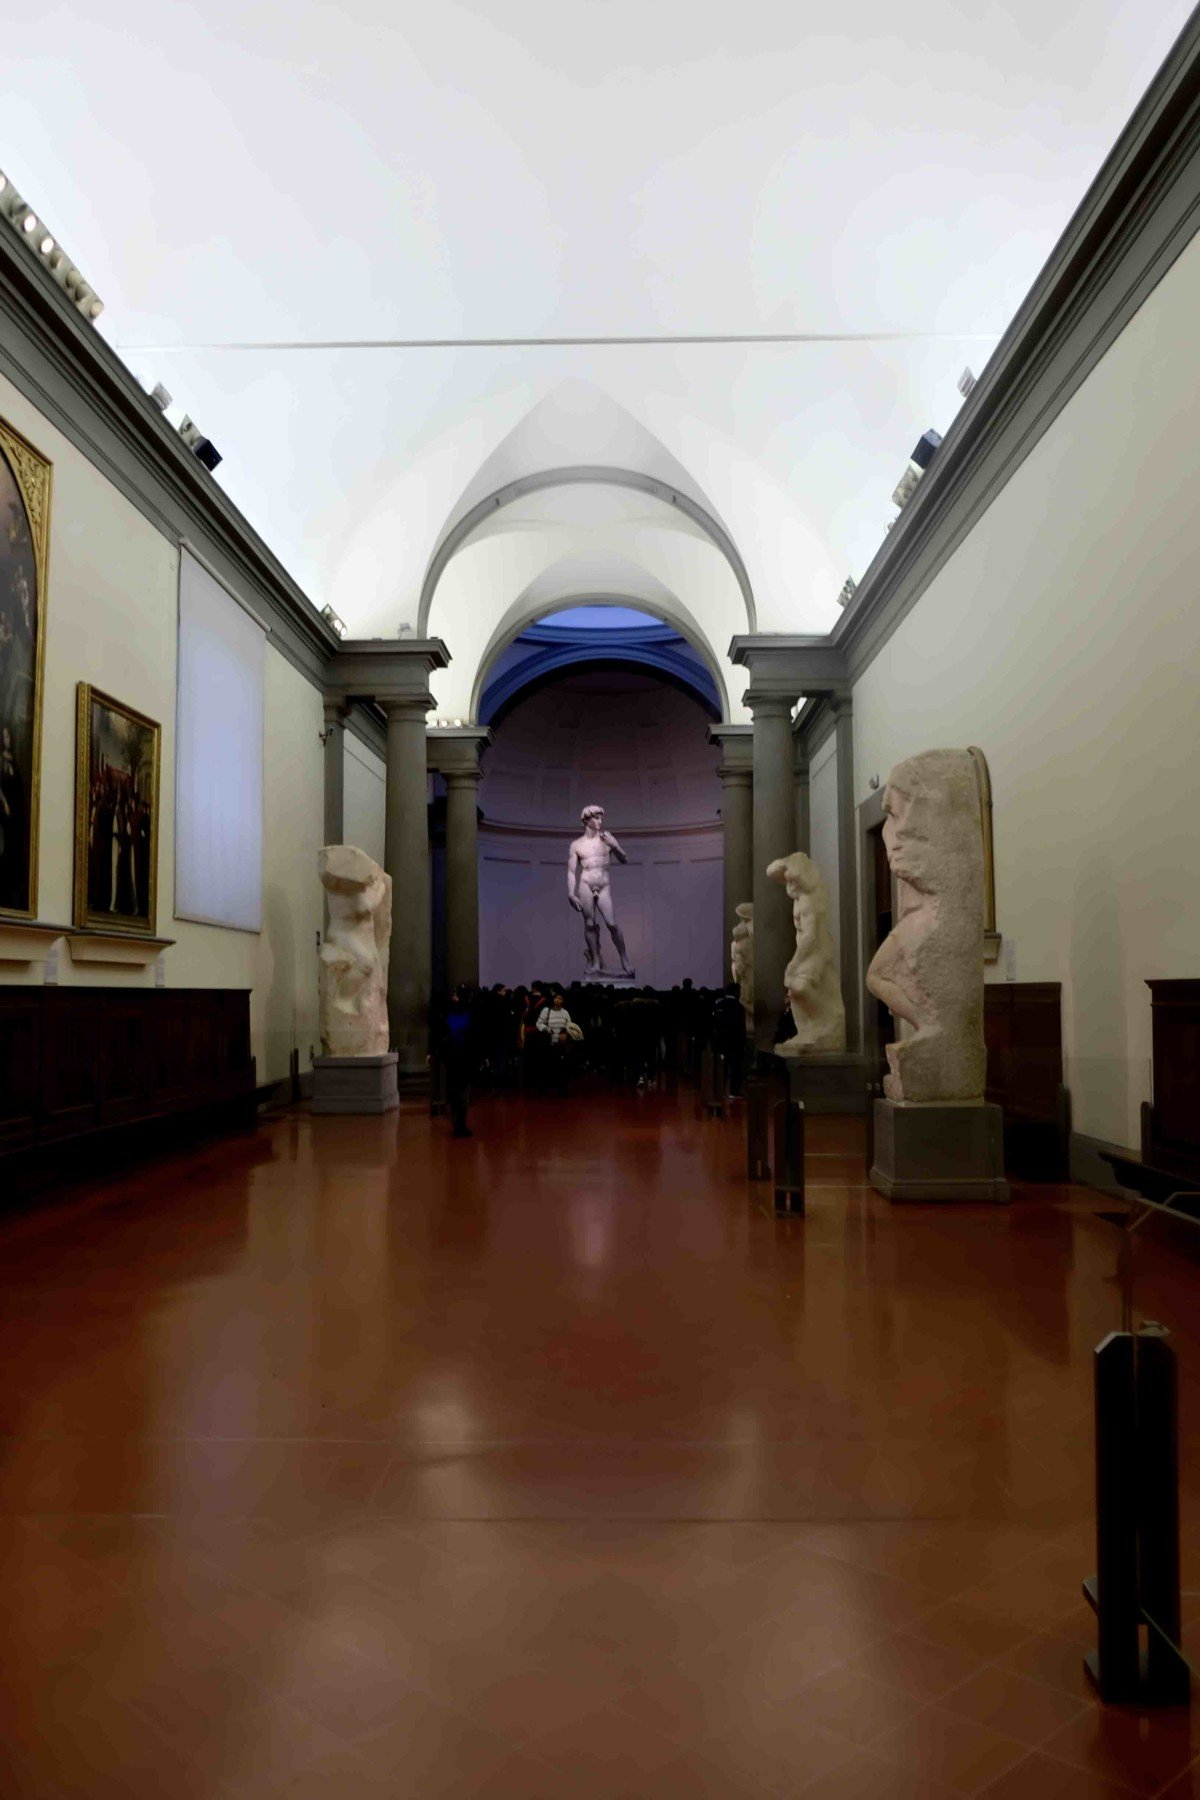 Visit Florence and Michelangelo's David and Duomo with Livitaly the gallery